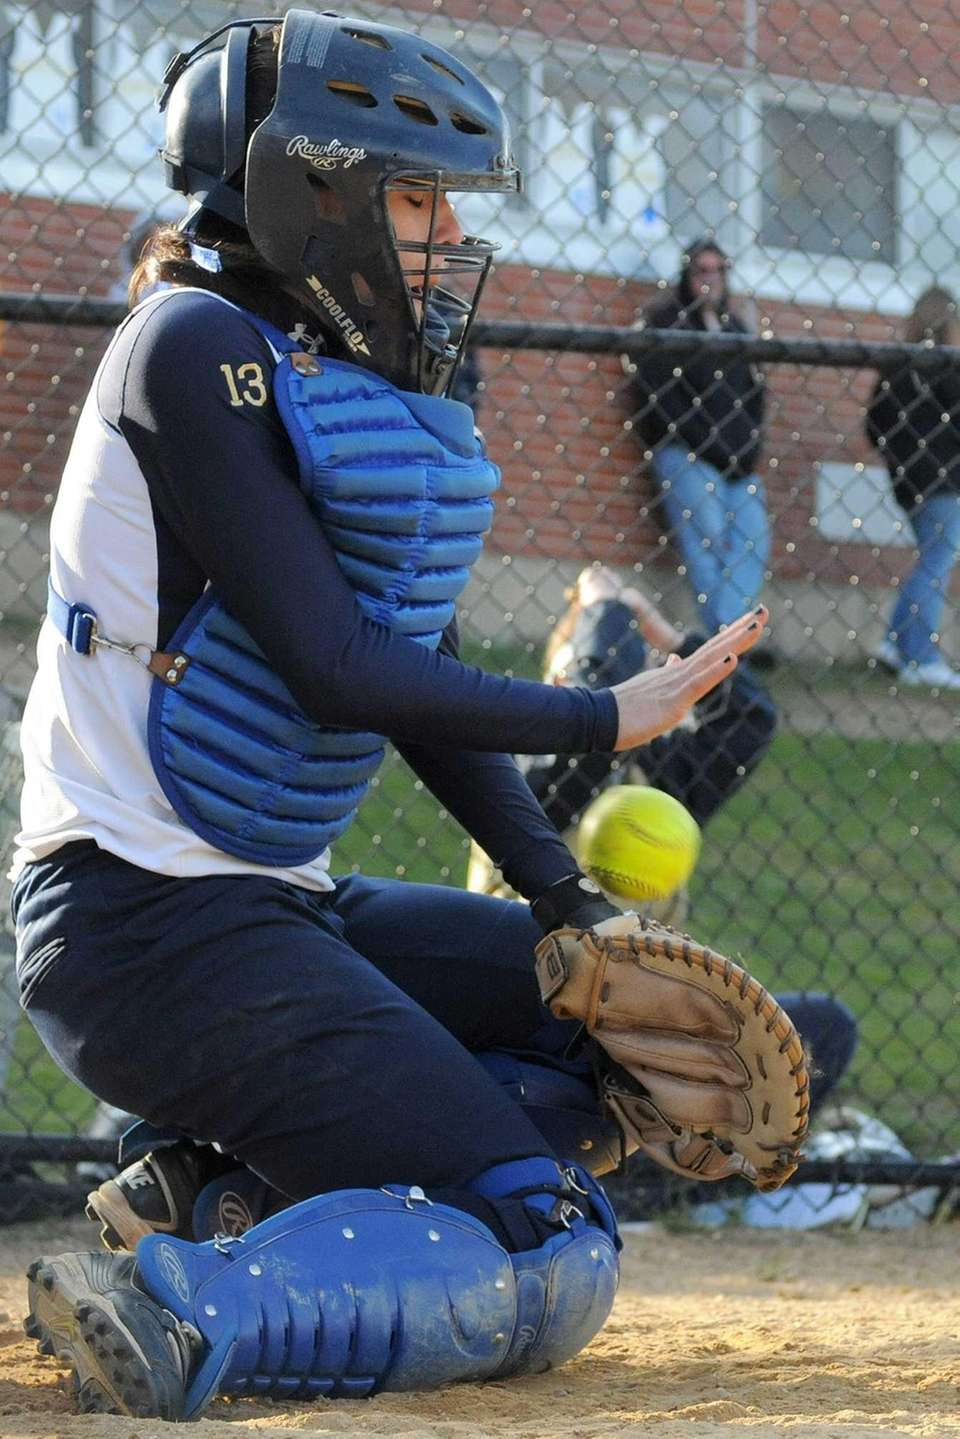 Baldwin catcher Michele Messina blocks a low pitch